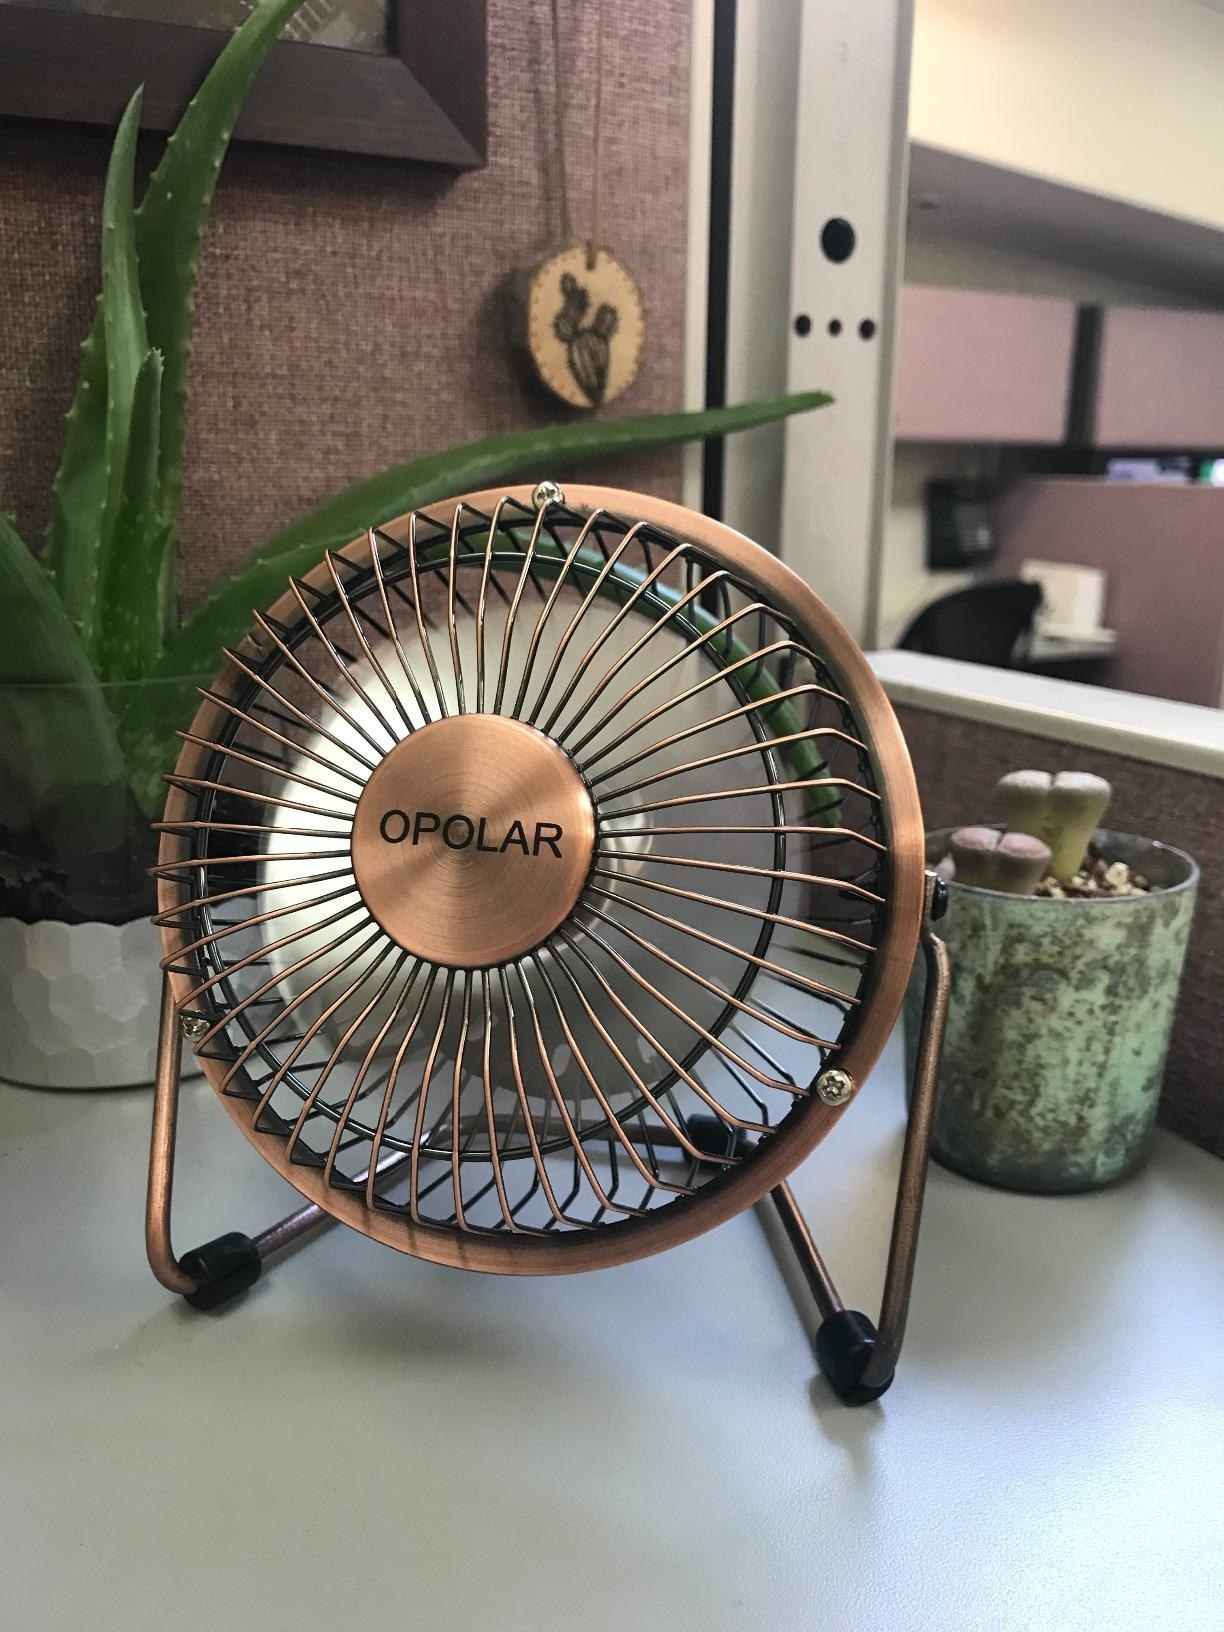 Reviewer photo of fan placed on desk